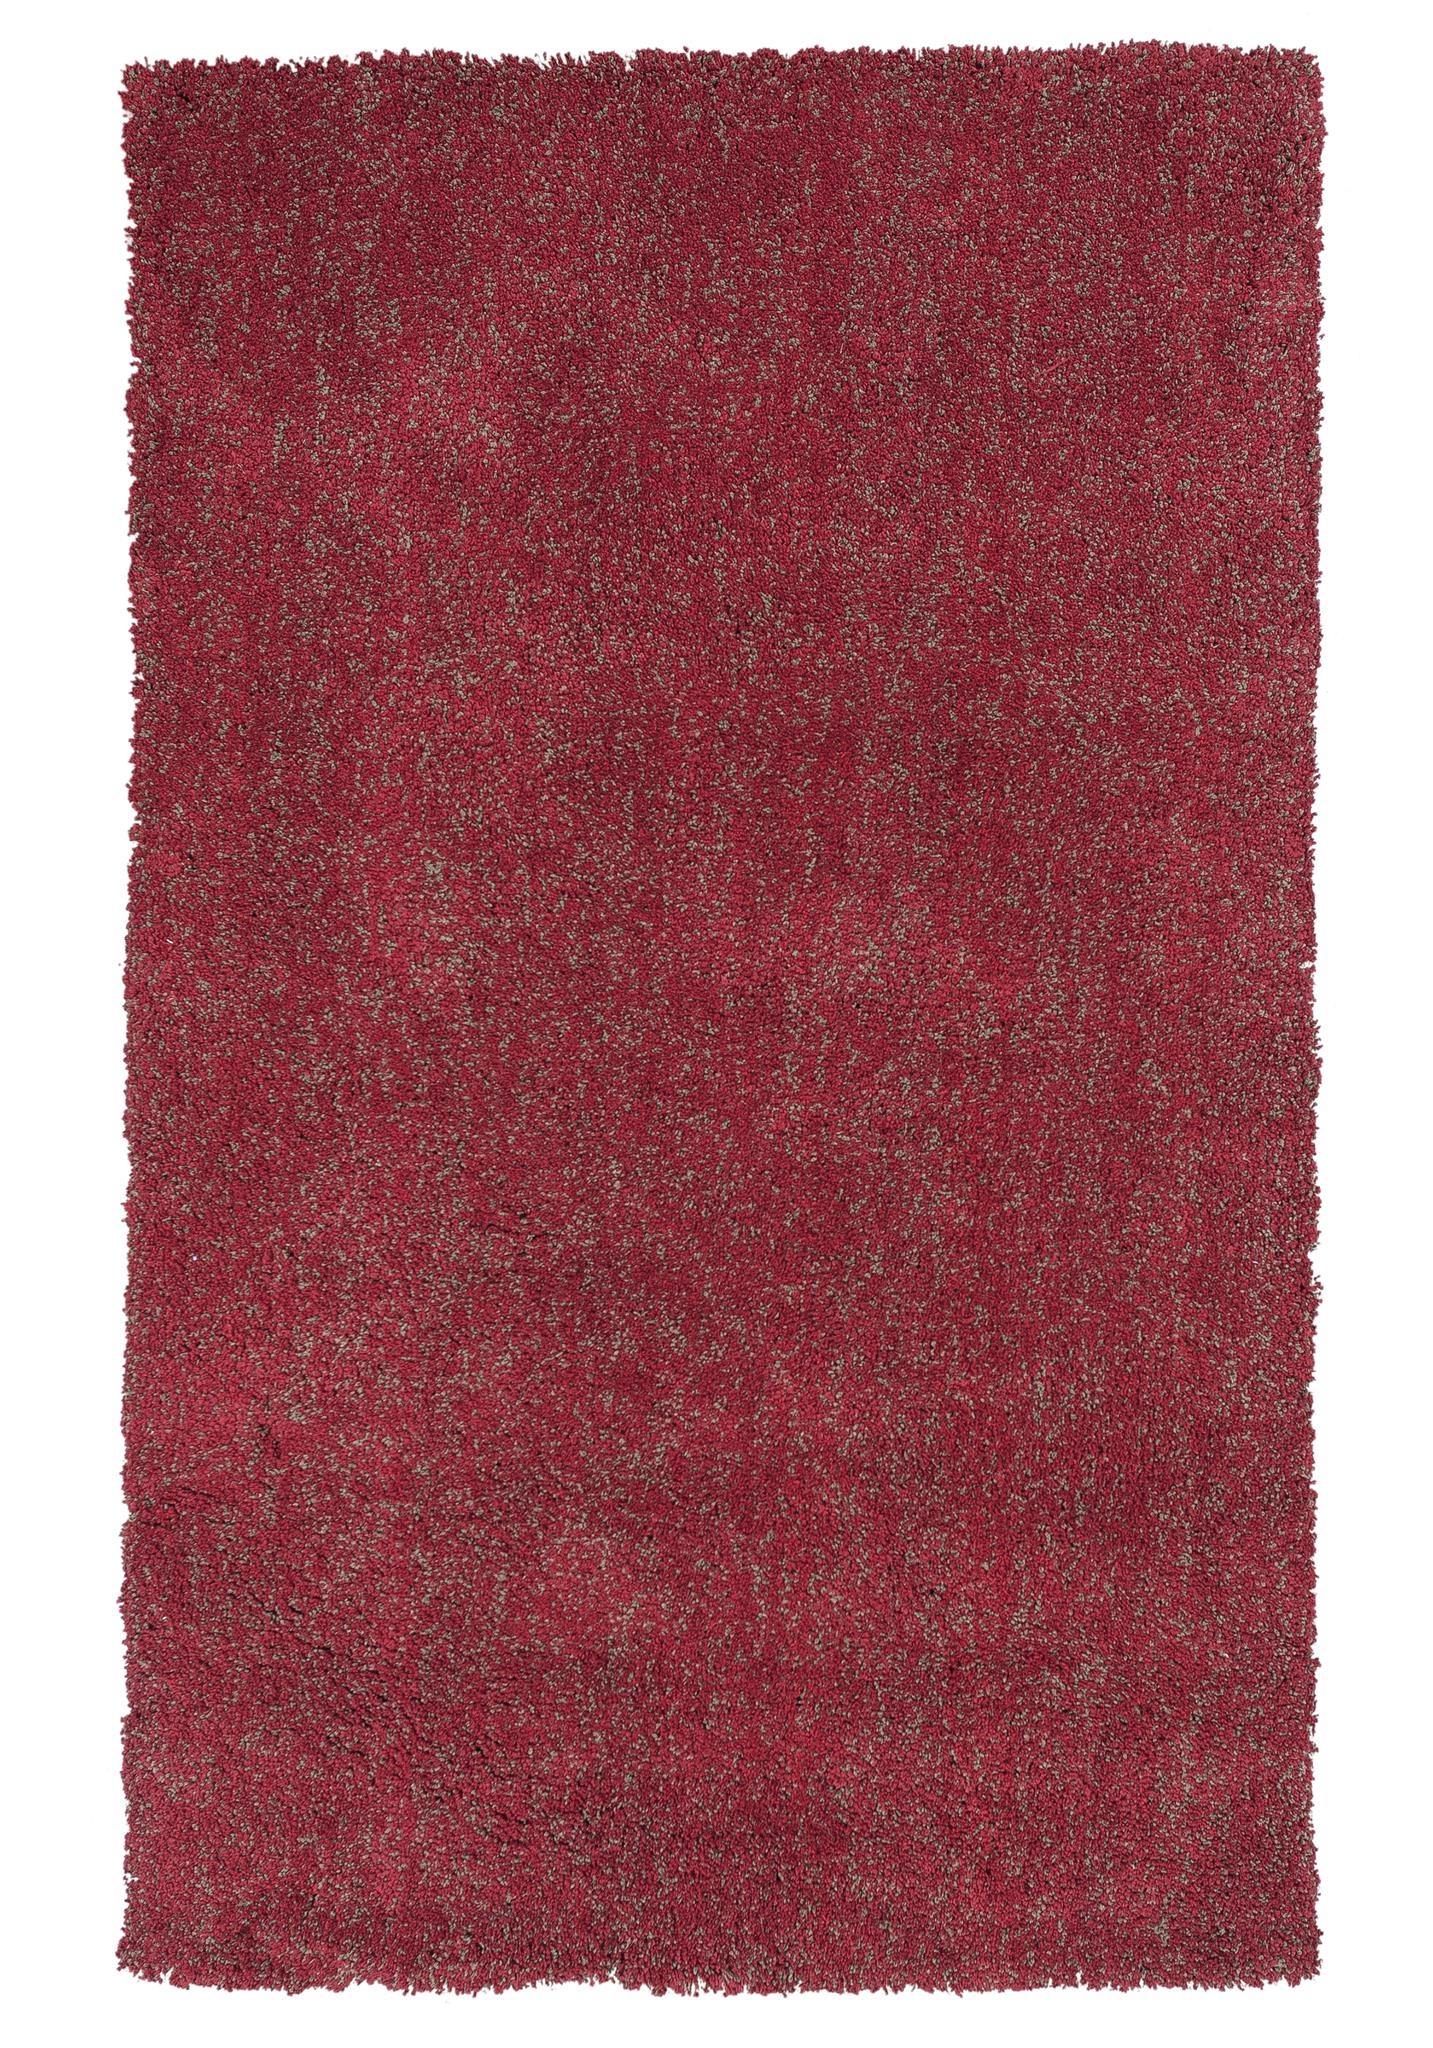 Bliss 1584 Red Heather Shag Shag